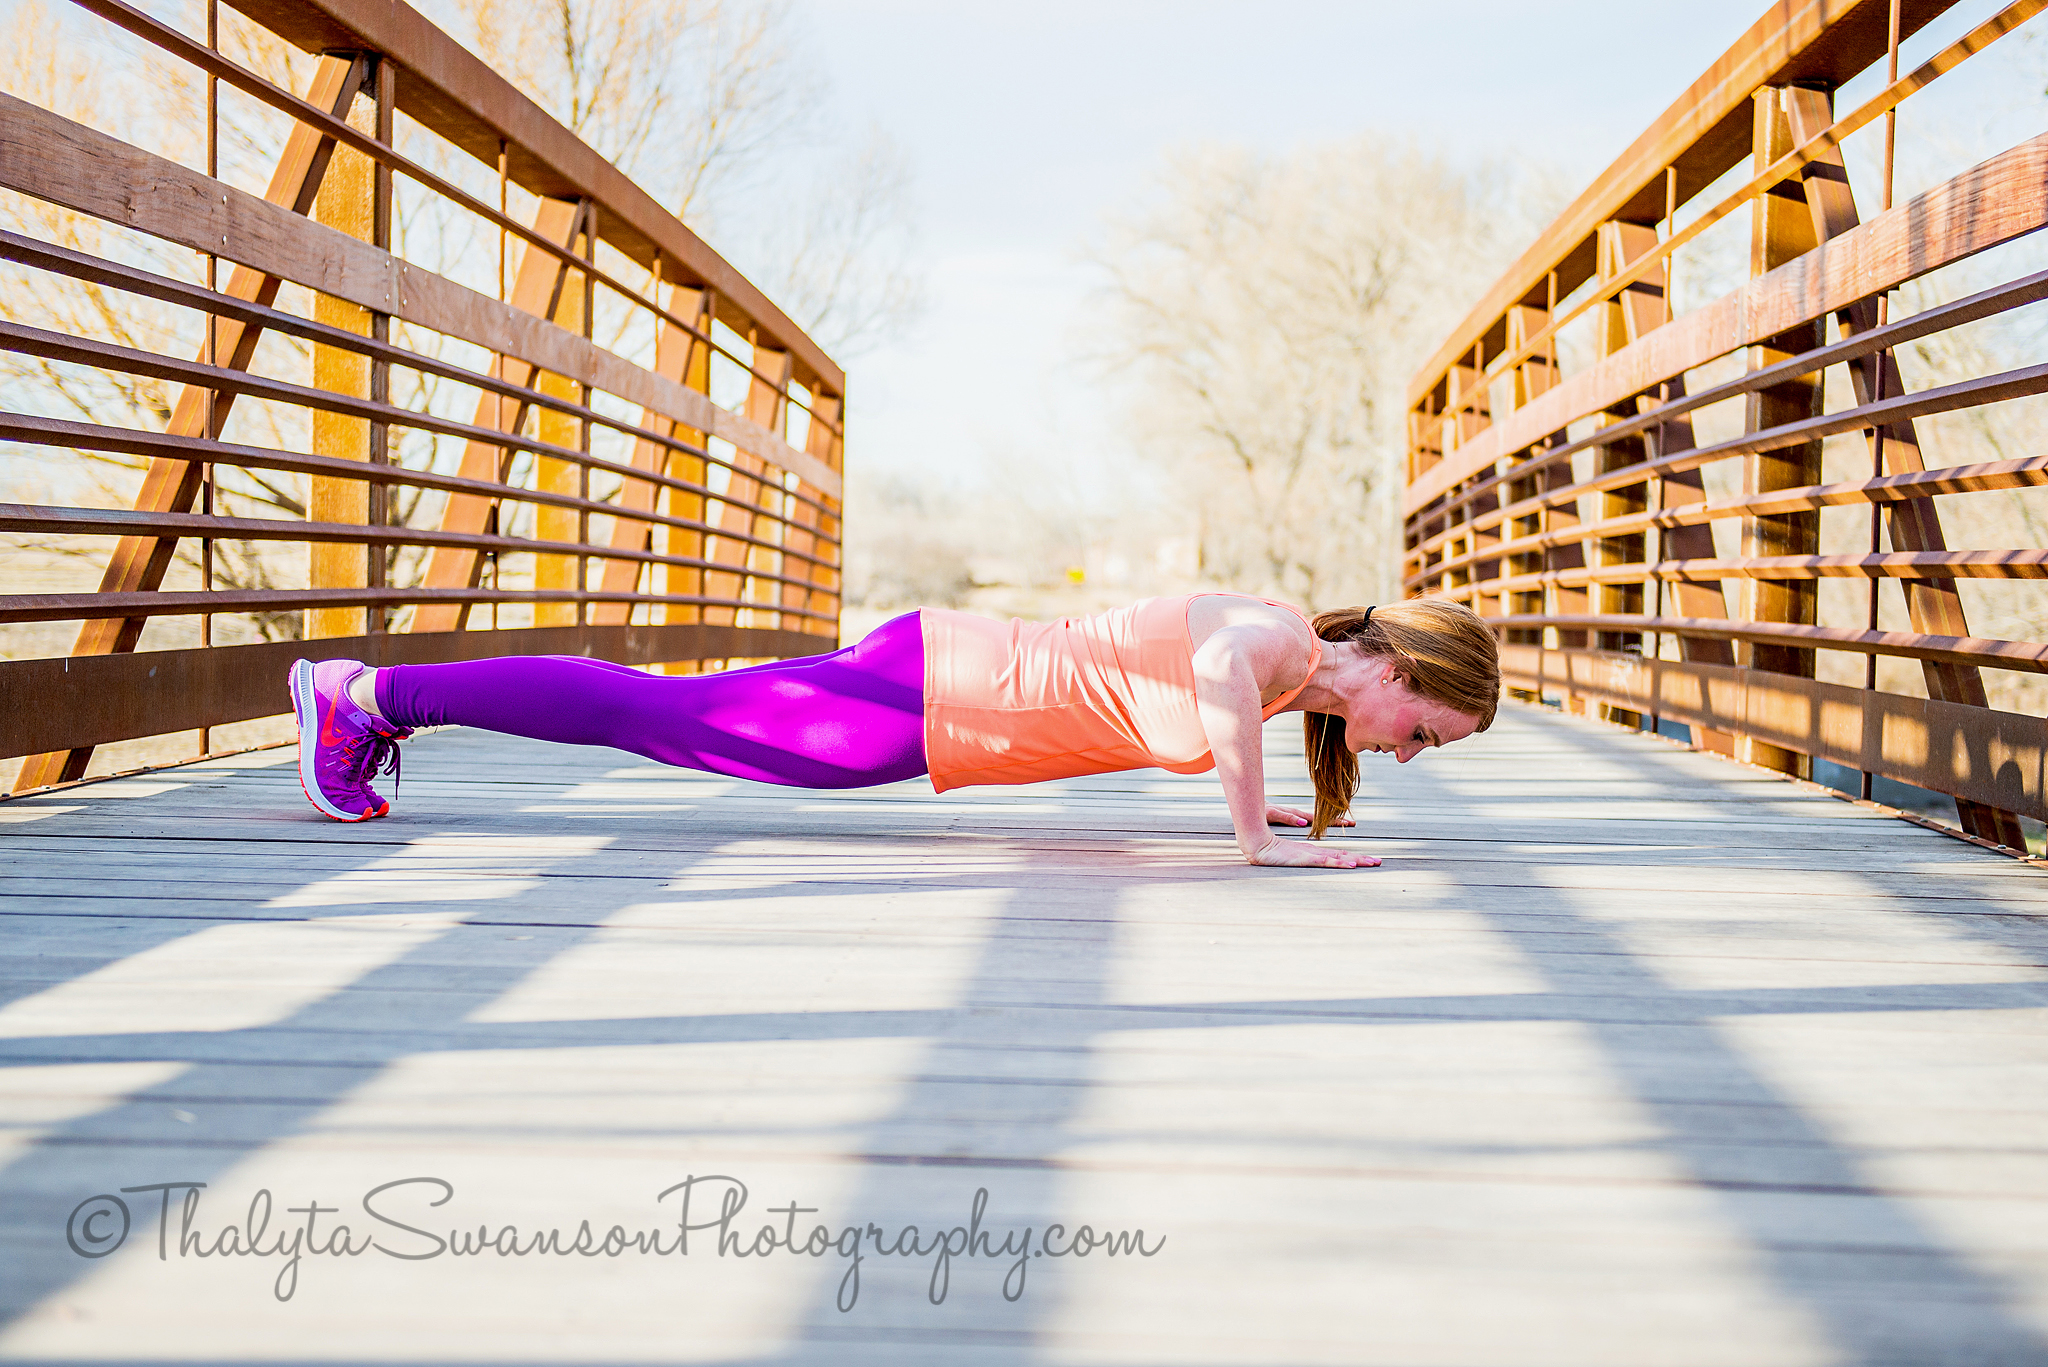 Thalyta Swanson Photography - Fitness Photos (9)